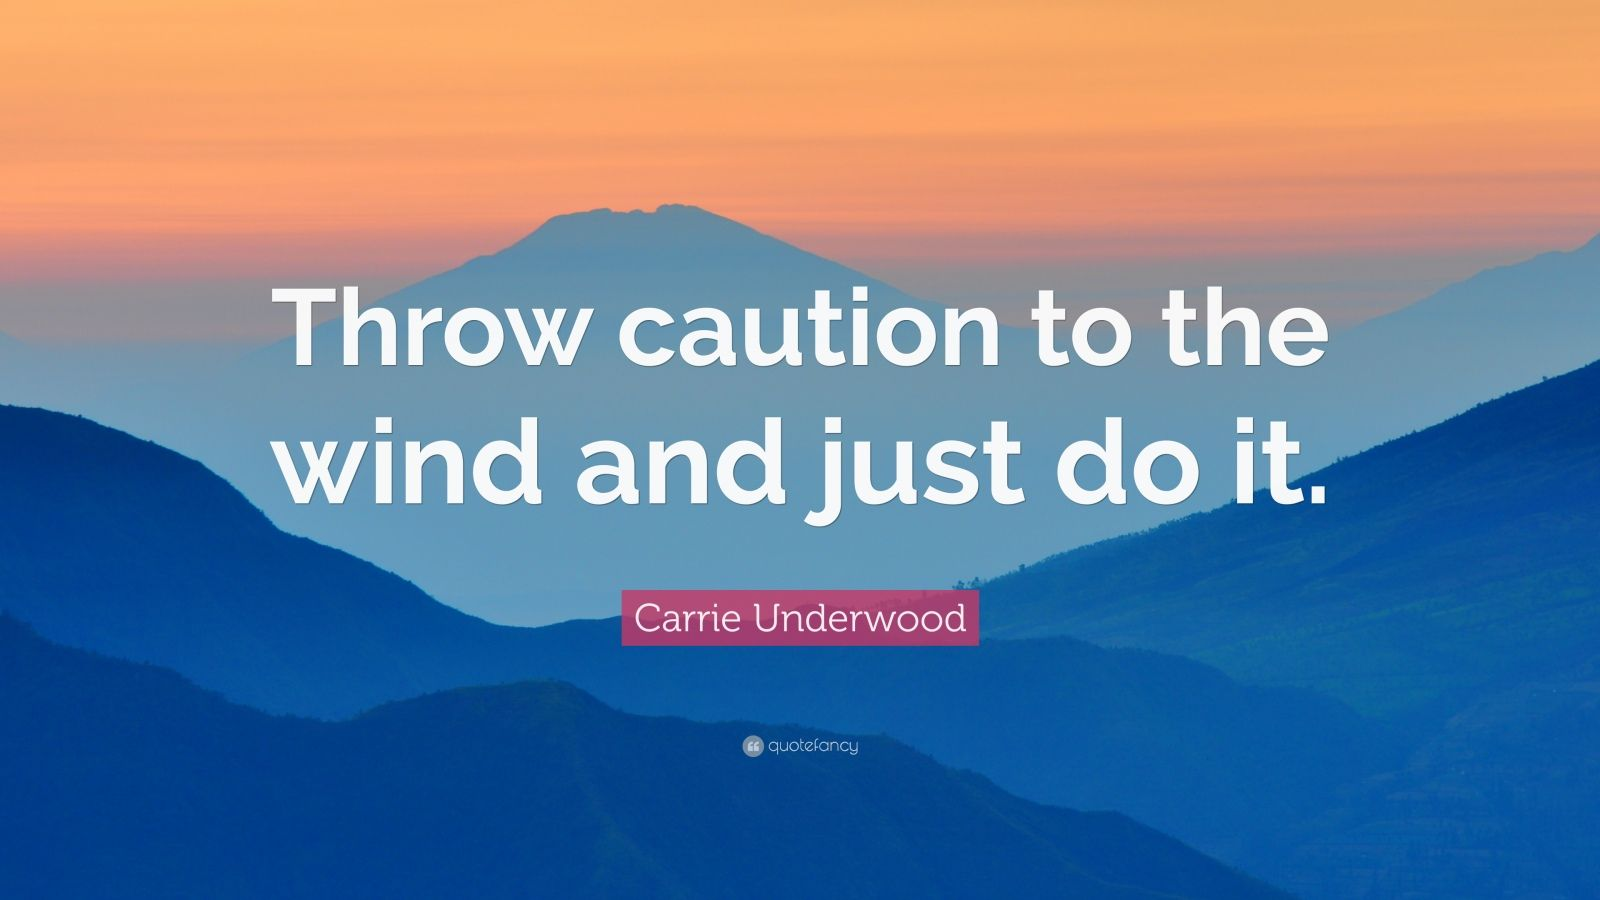 """Carrie Underwood Quote: """"Throw caution to the wind and just do it."""""""